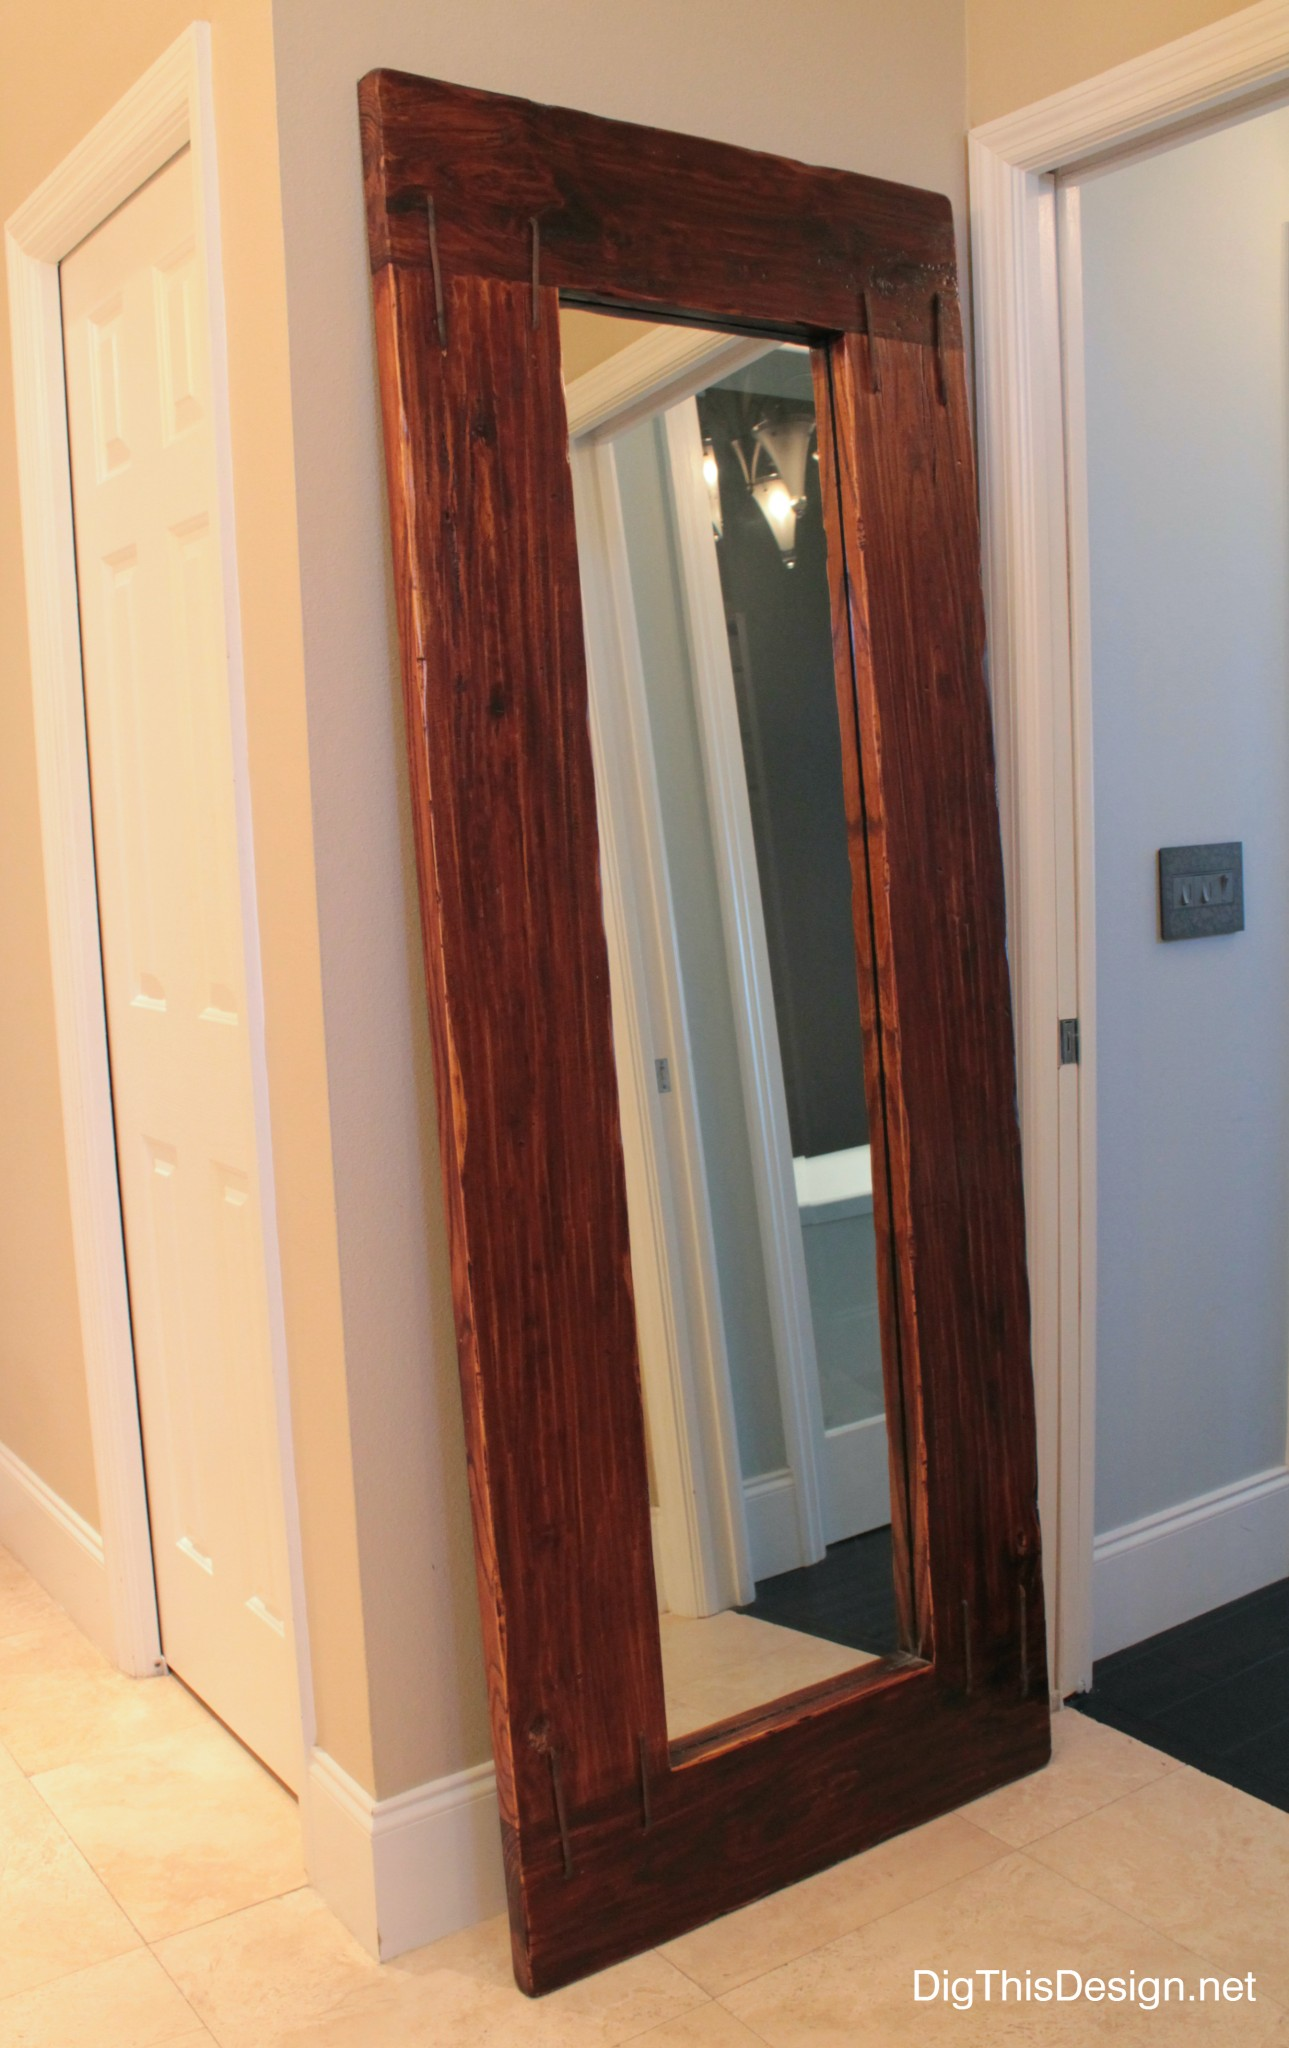 bathroom accessories leaning mirror reclaimed rustic wood bathroom vanity facelift